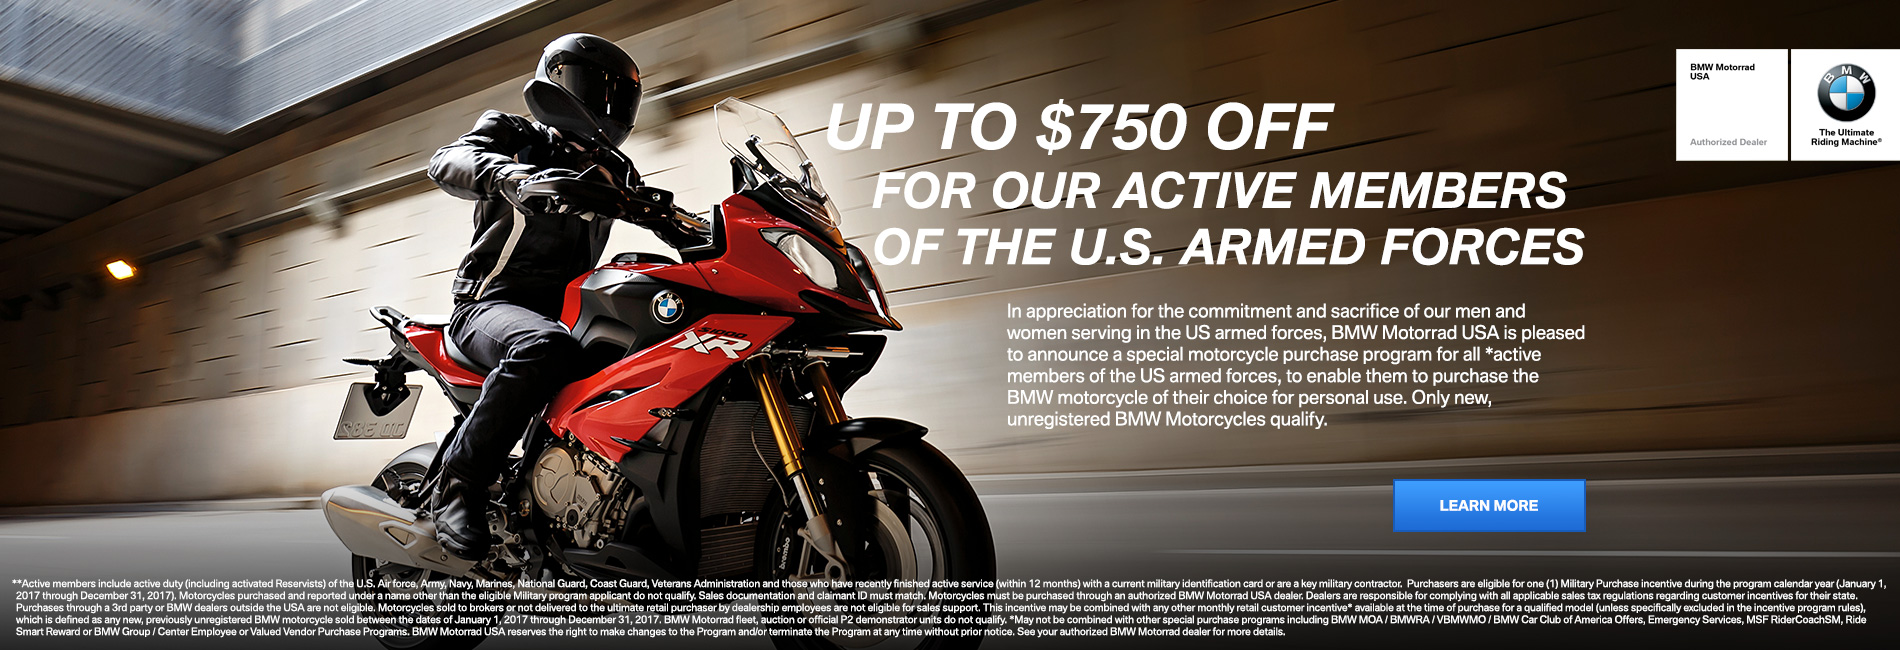 marquee-military-motorcycle-purchase.jpg